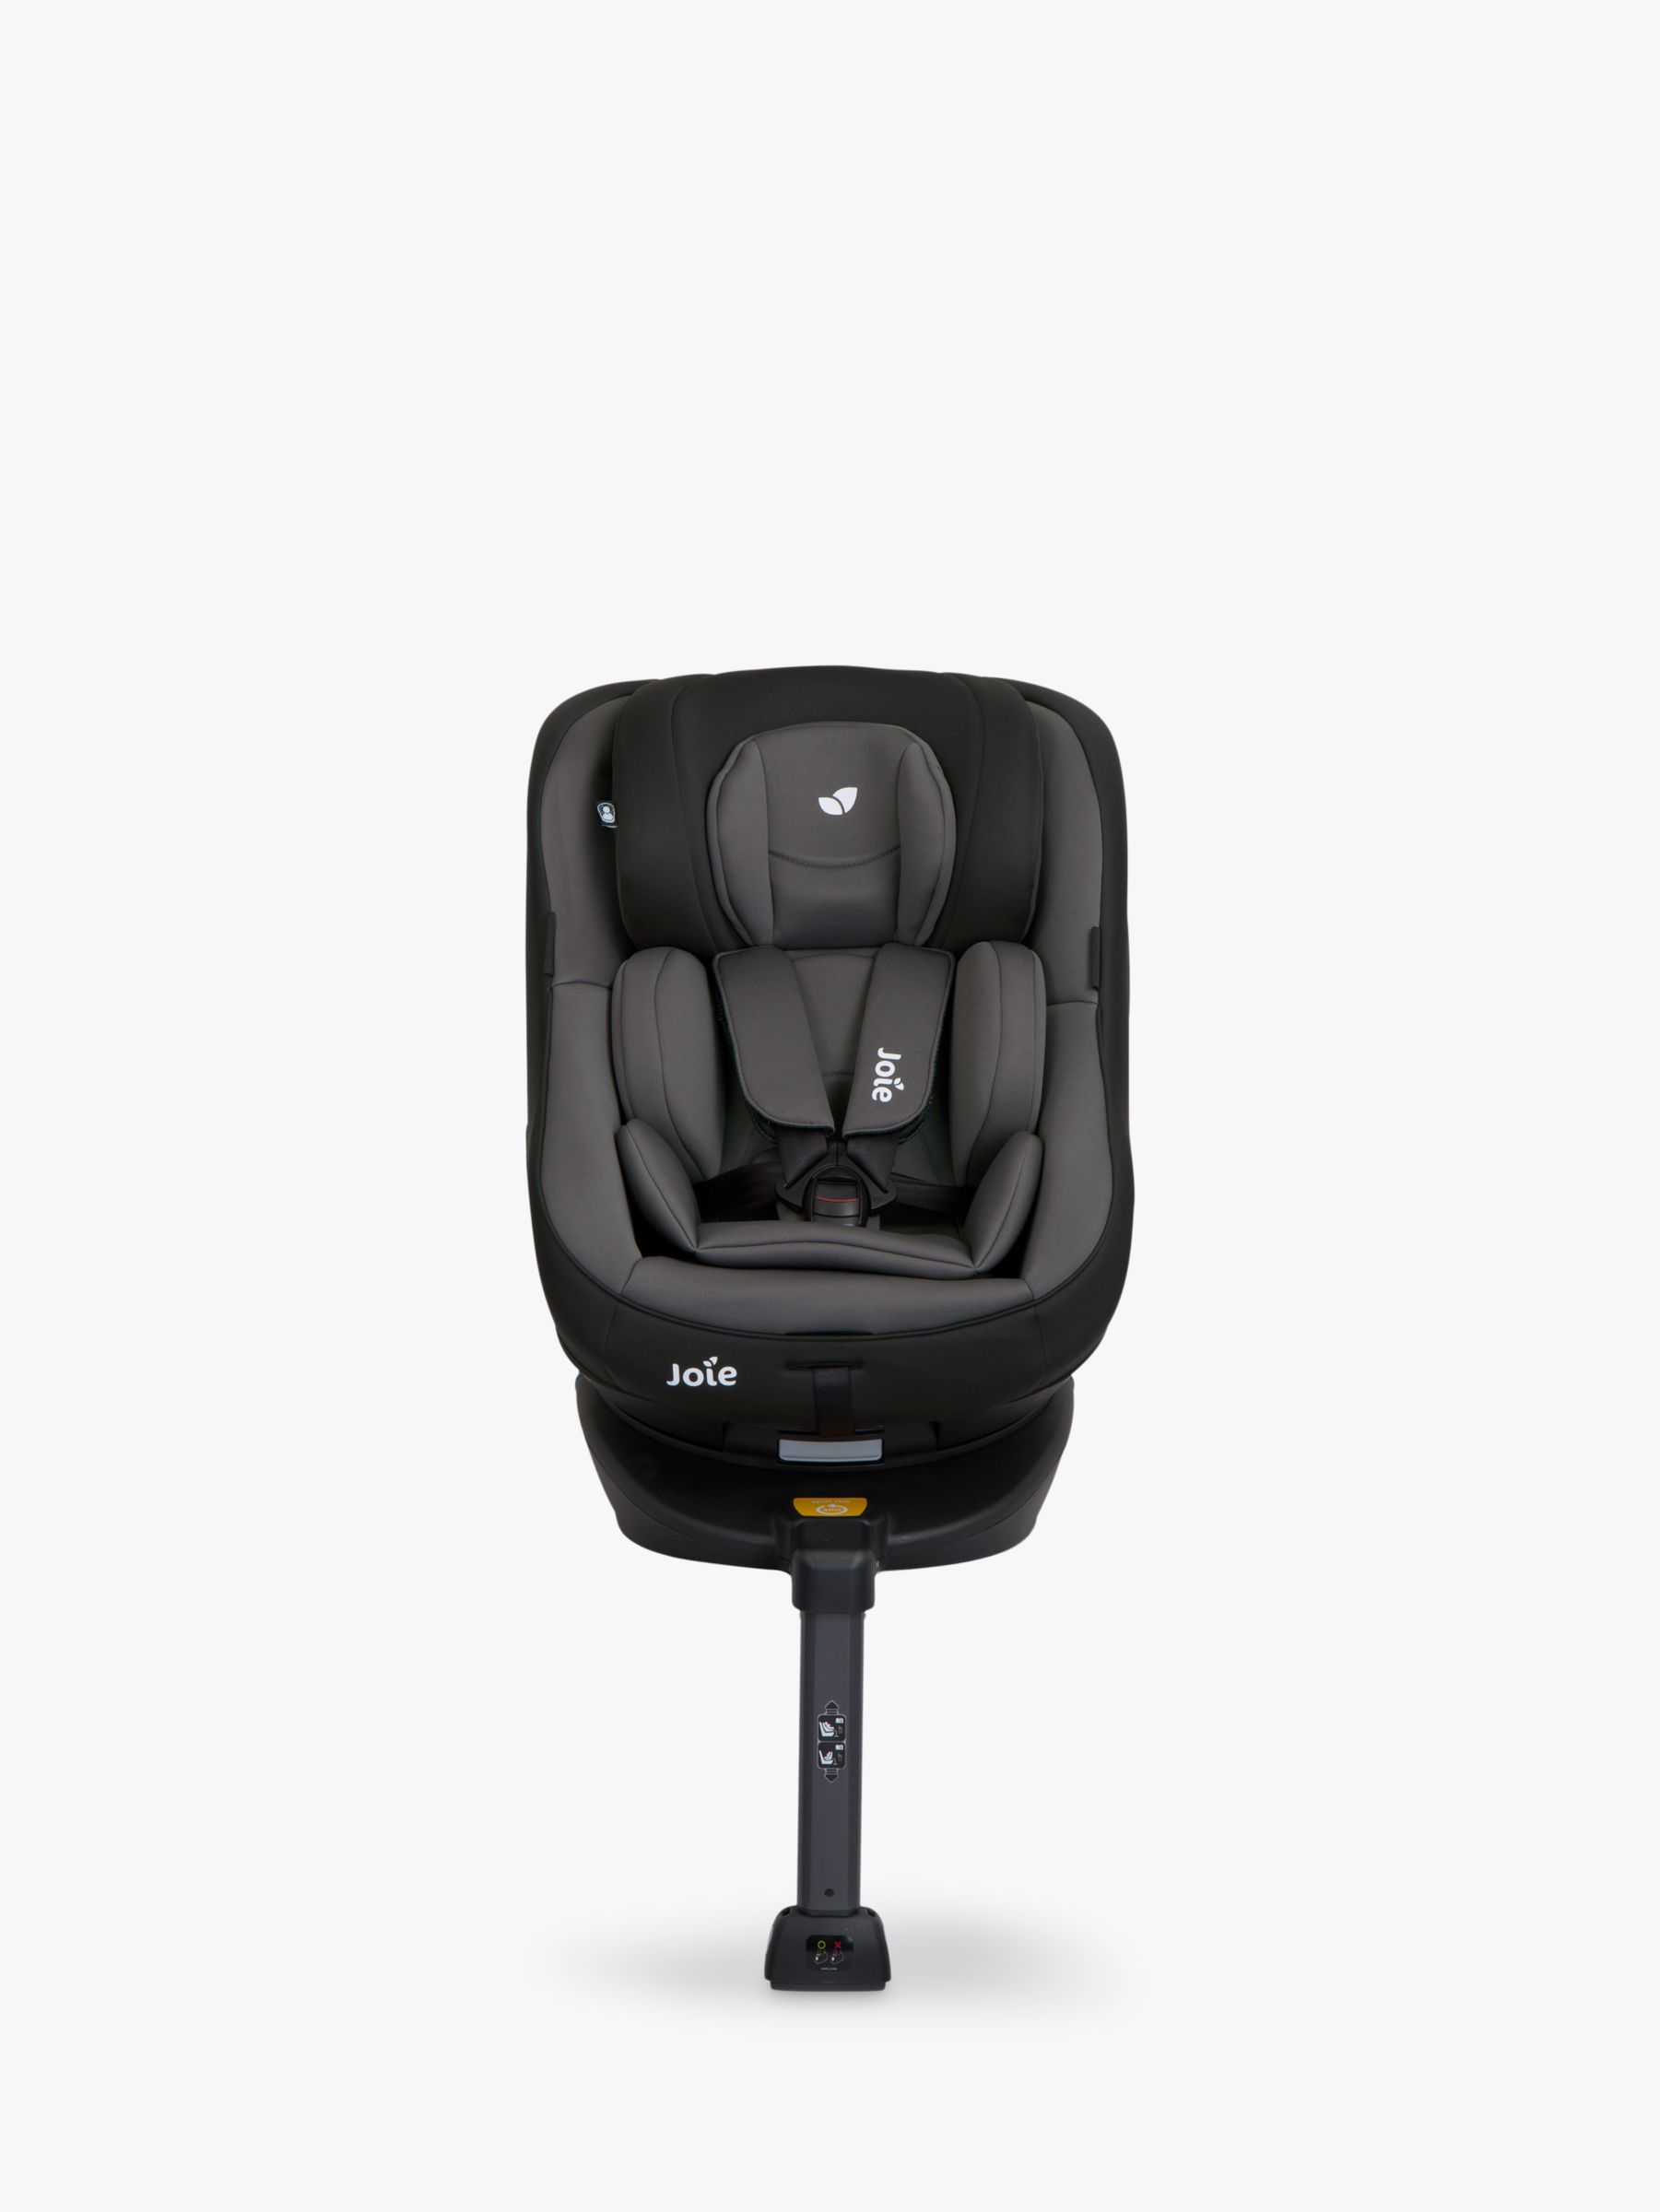 Joie Baby Joie Baby Spin 360 Group 0+/1 Car Seat, Ember